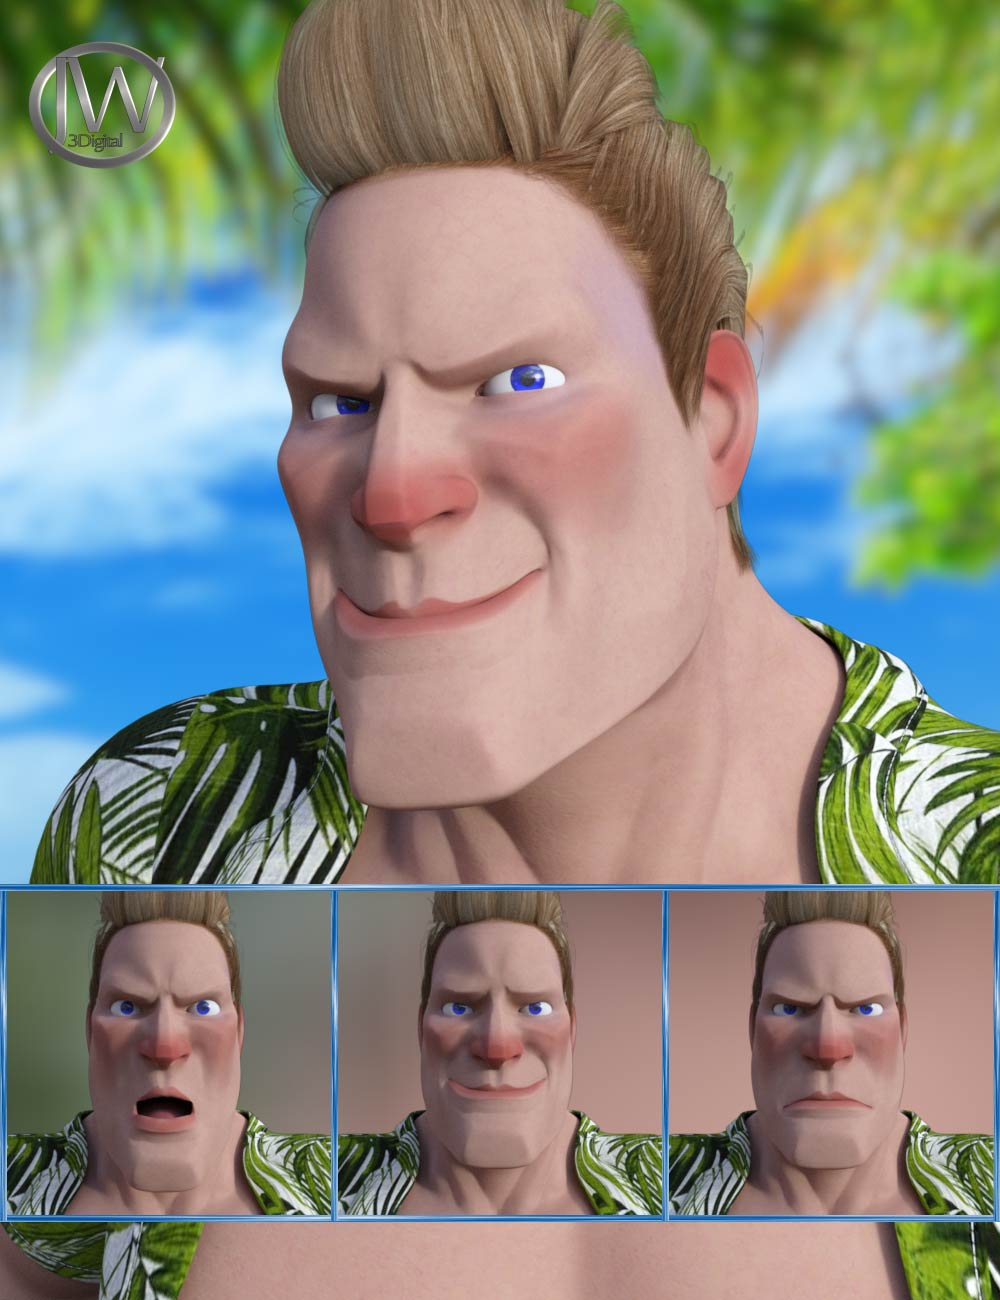 Cartoon Guy - Expressions for Genesis 8 Male and Toon Dwayne 8 by: JWolf, 3D Models by Daz 3D